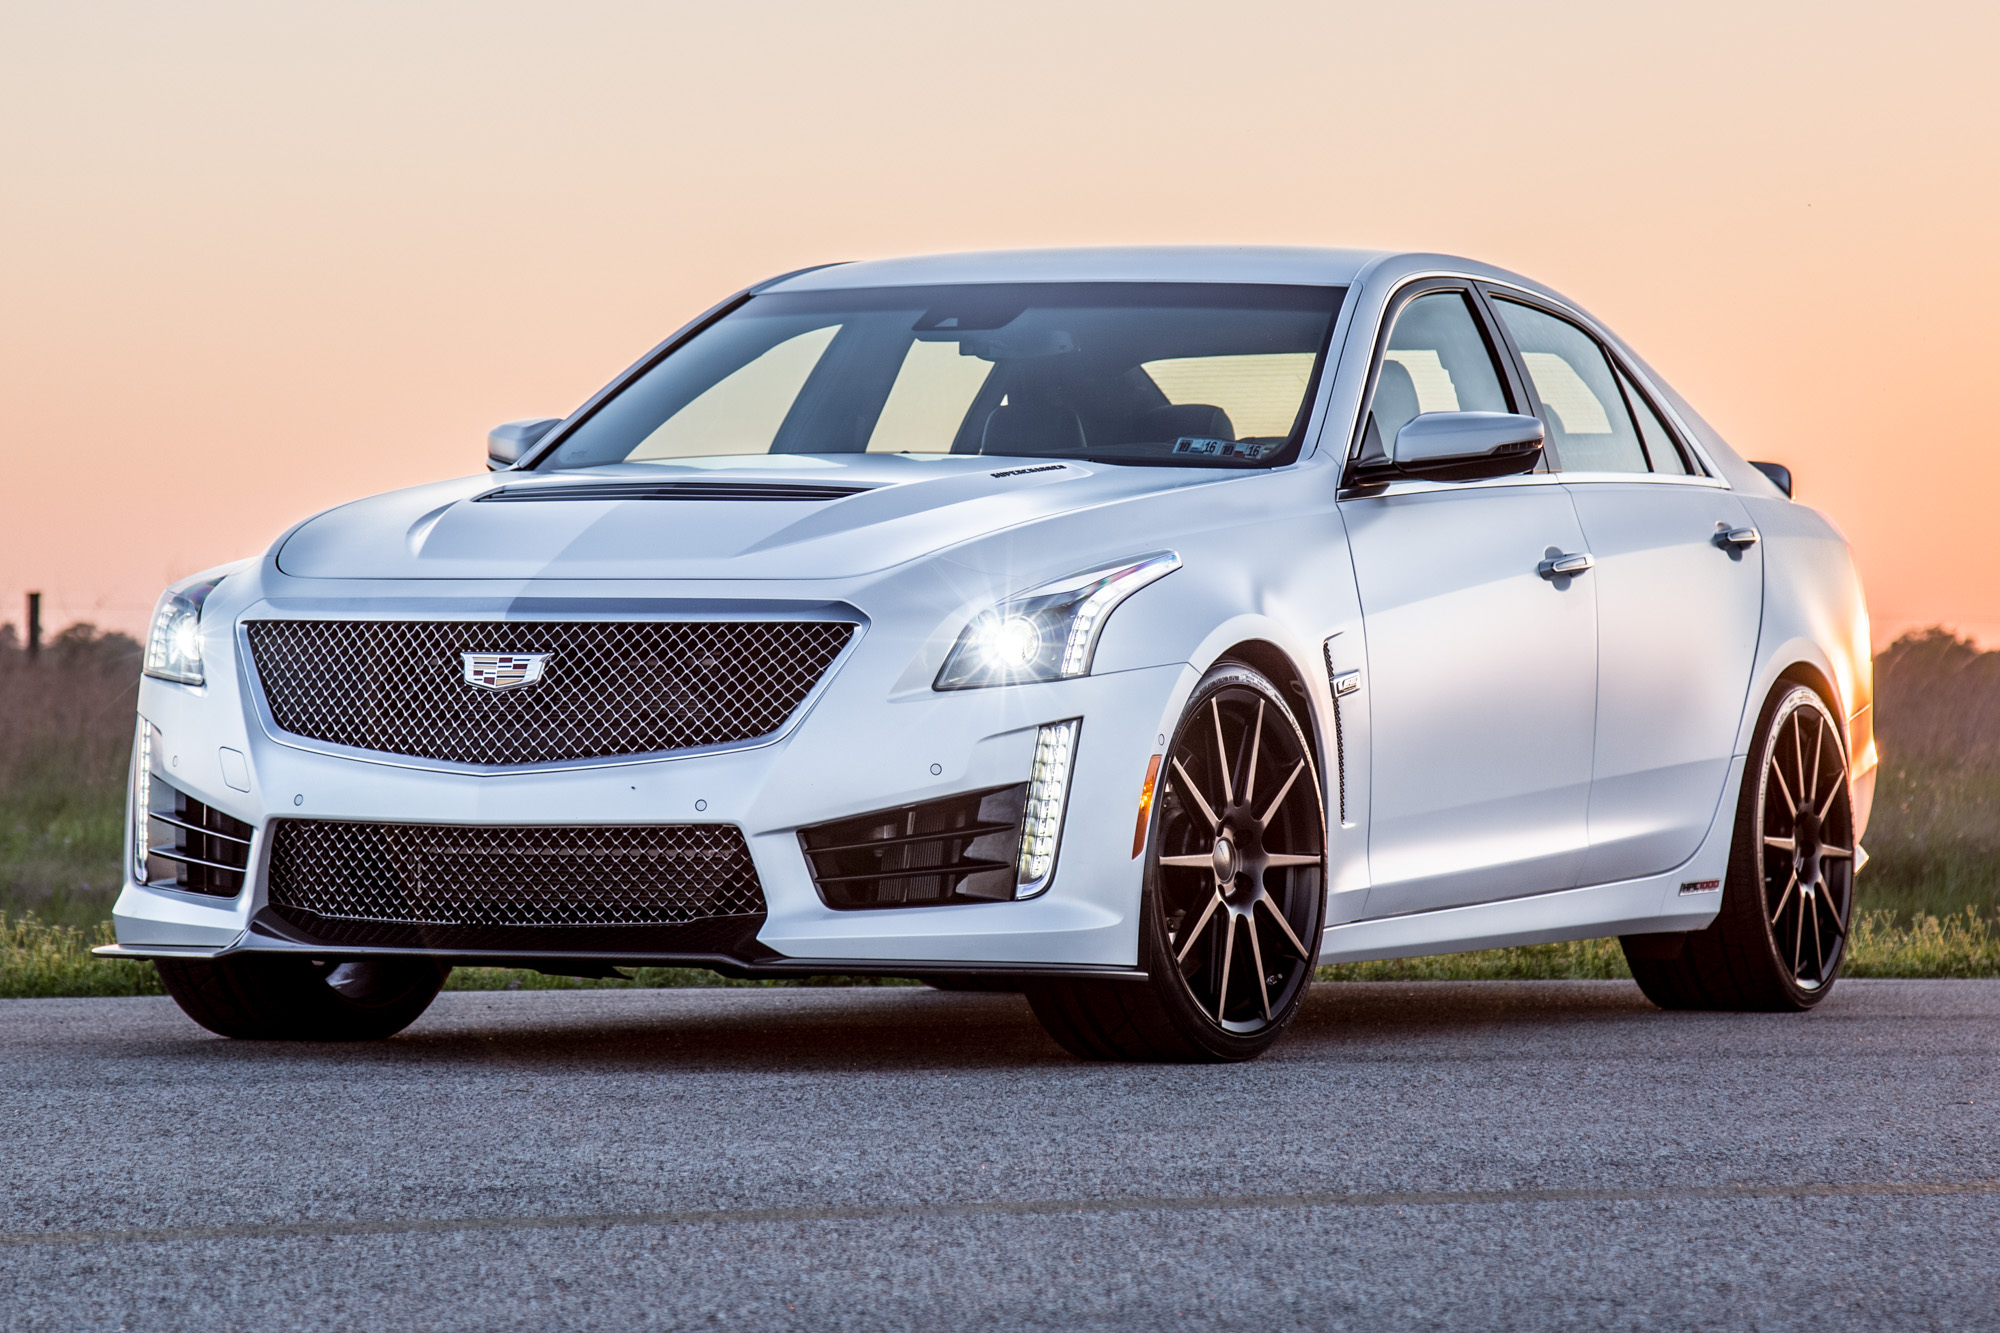 74 Gallery of 2020 Cadillac Cts V Horsepower Style for 2020 Cadillac Cts V Horsepower